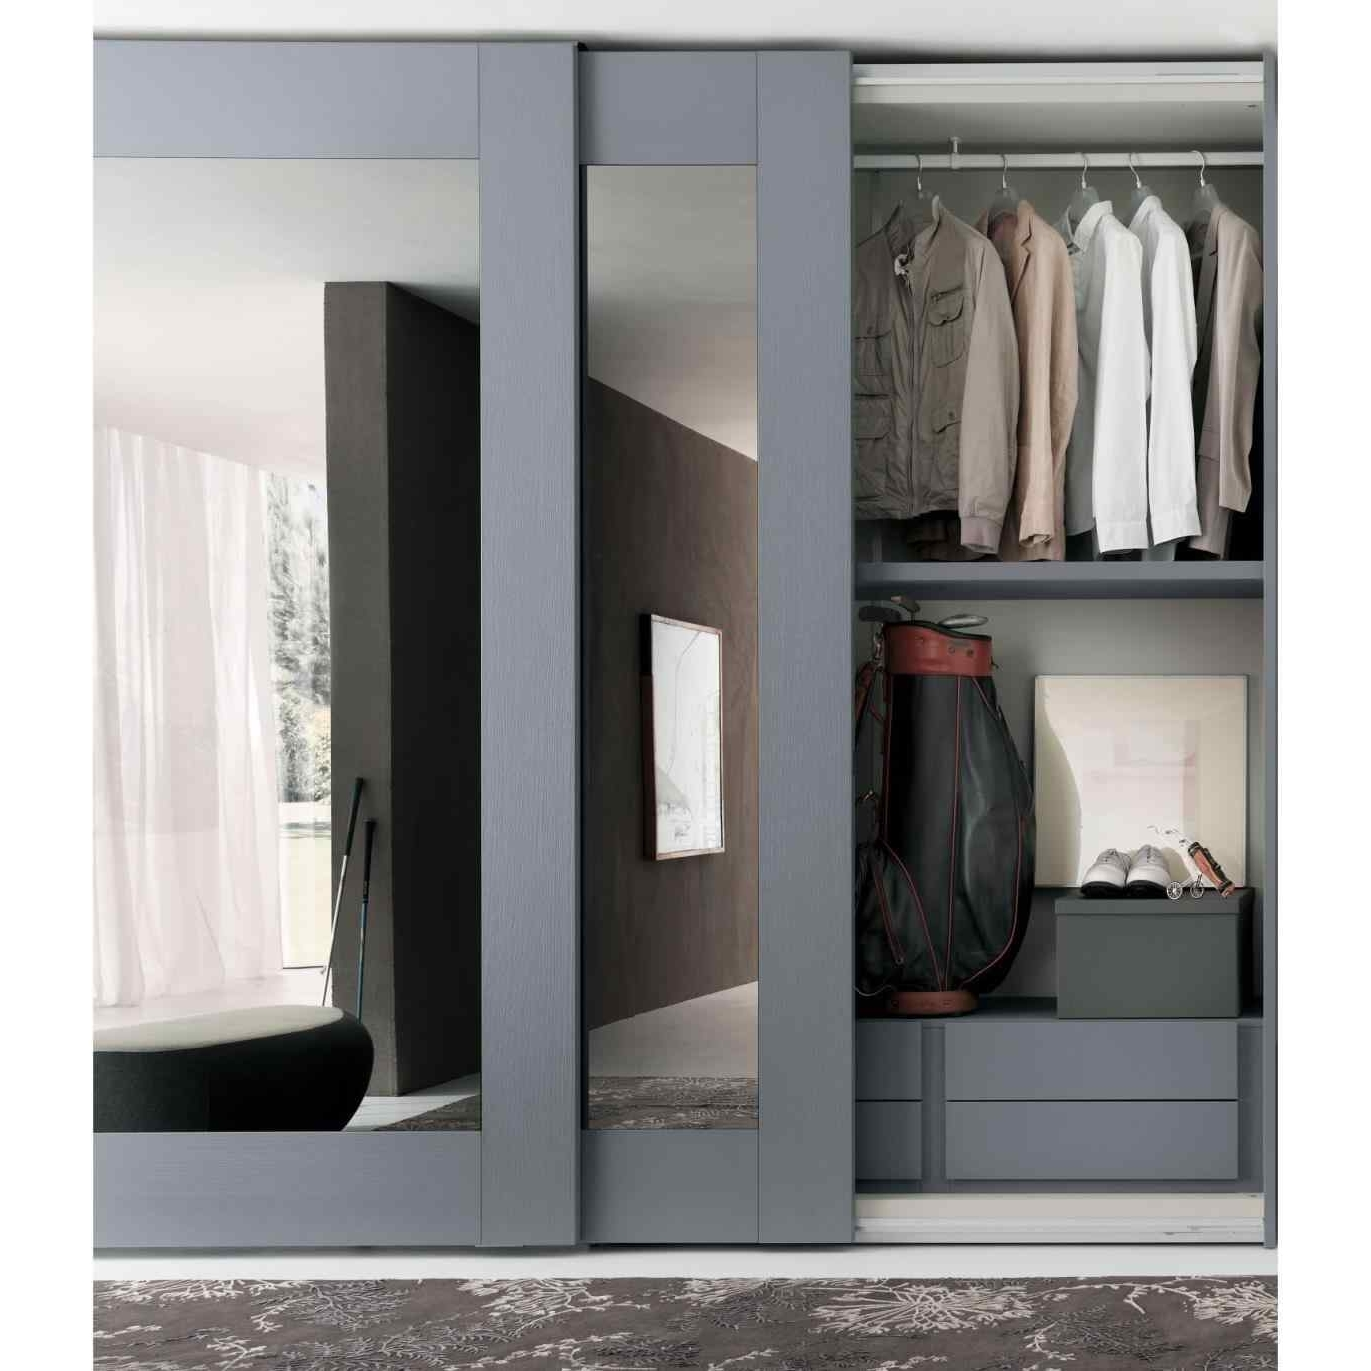 Signature Wardrobes Intended For 2017 Wardrobe & Armoire : And Bronze Signature Built In Wardrobes With (View 7 of 15)